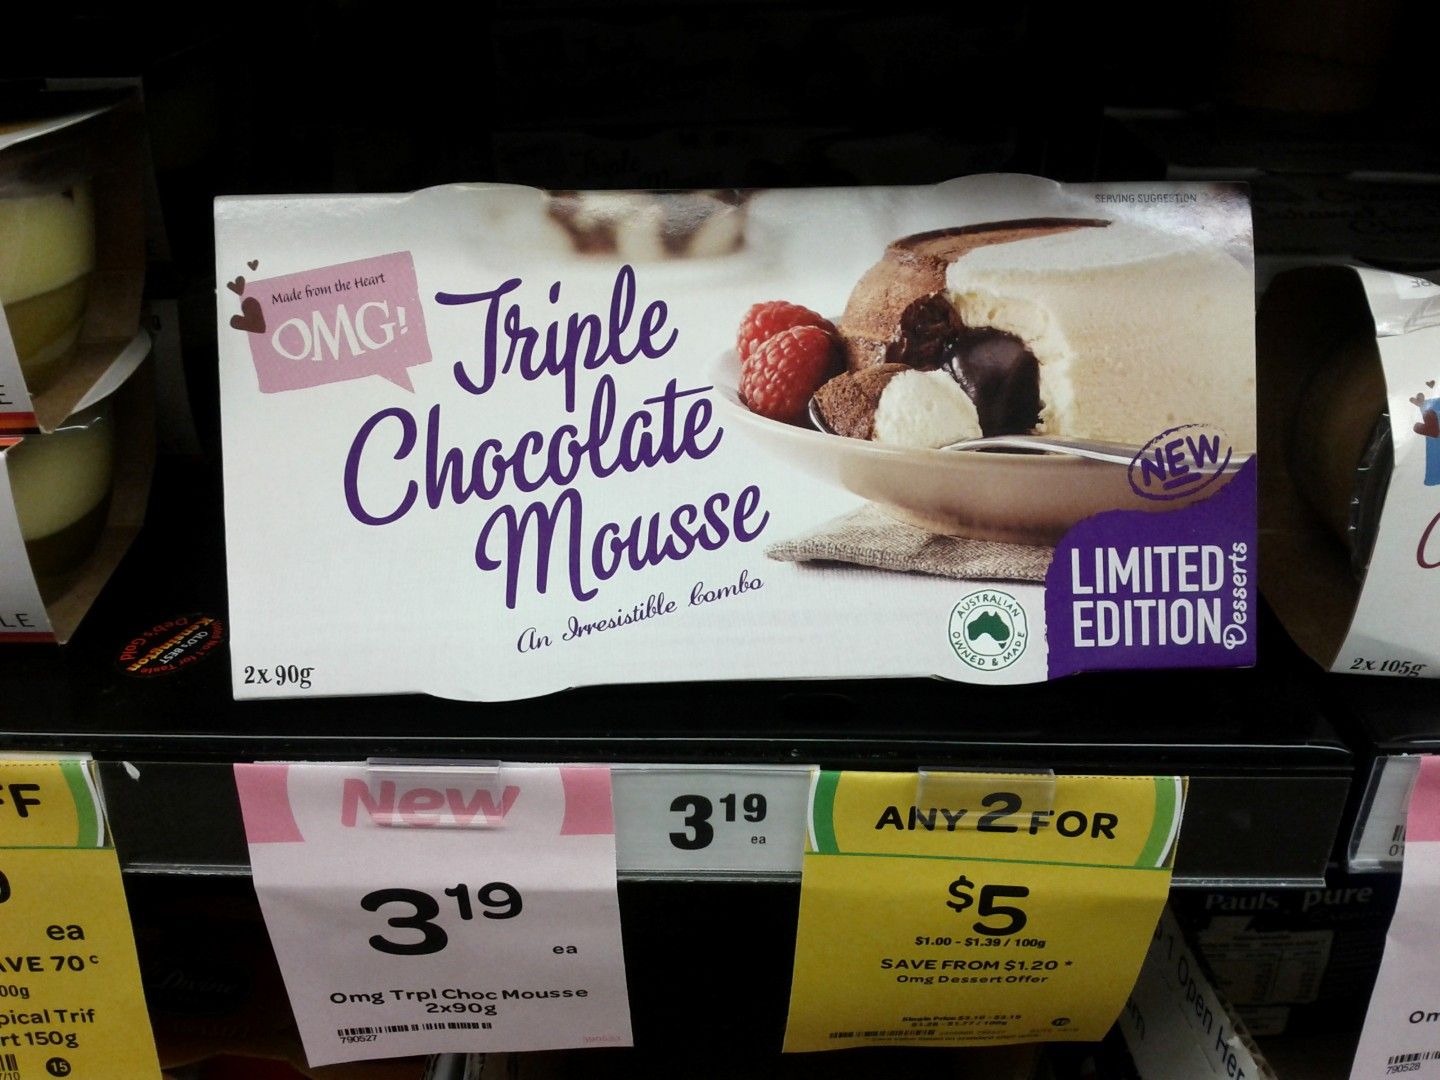 OMG 2x90g Triple Chocolate Mousse